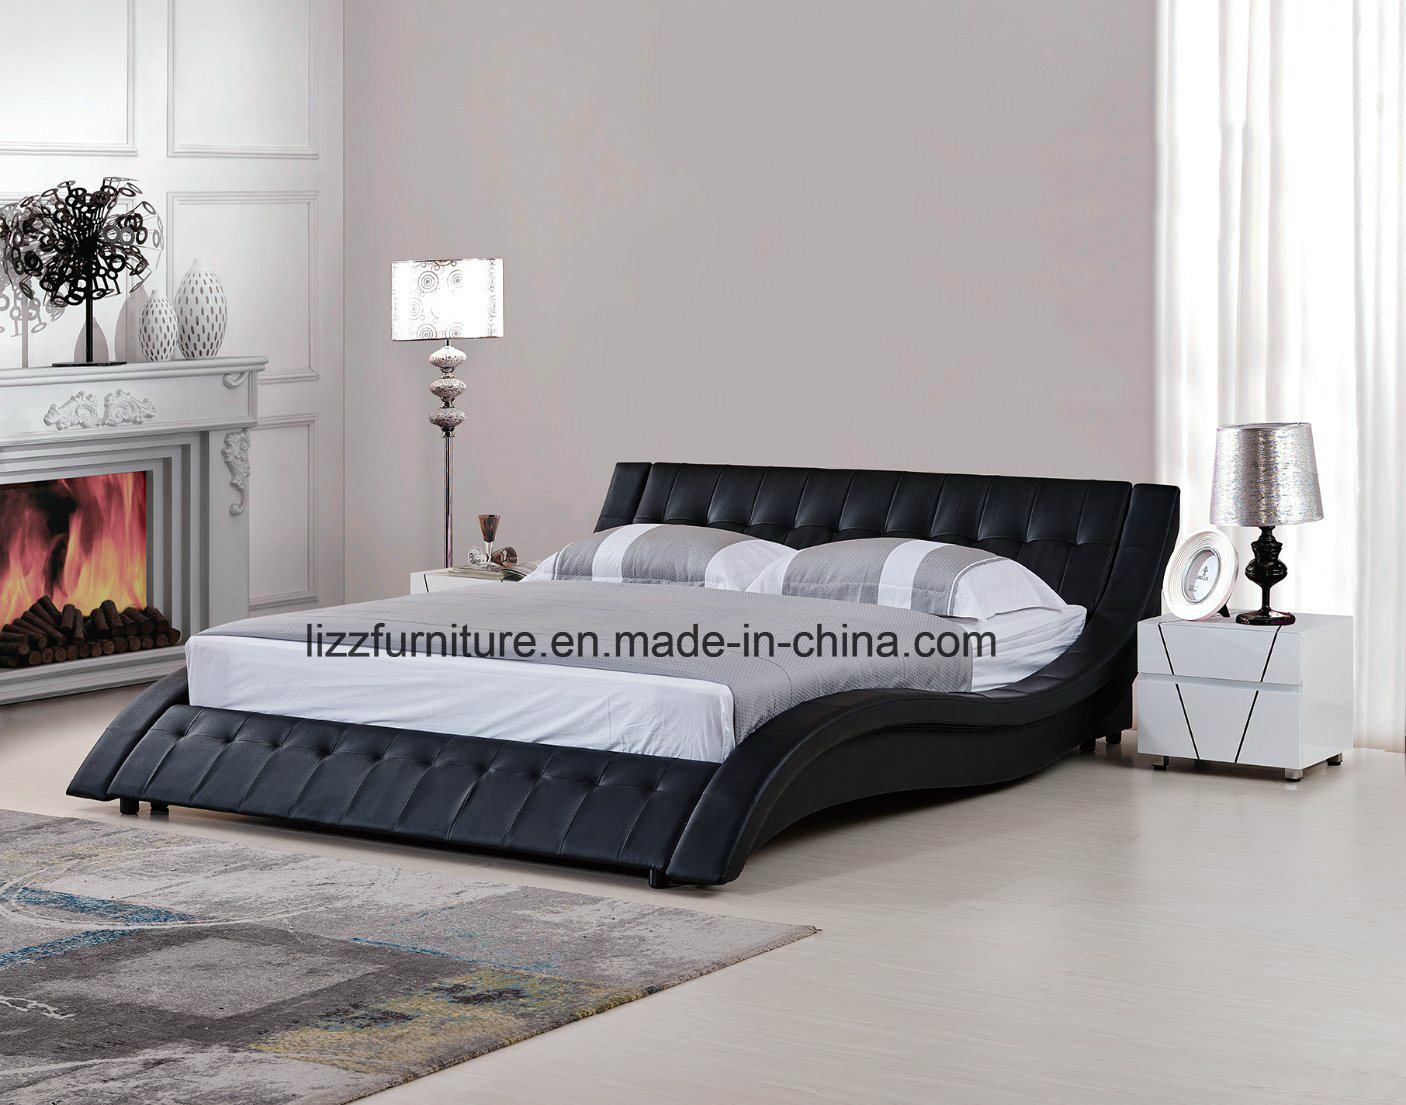 China Euro Black Leather Queen Size Curved Shape Platform Bed China King Size Bed Soft Bed